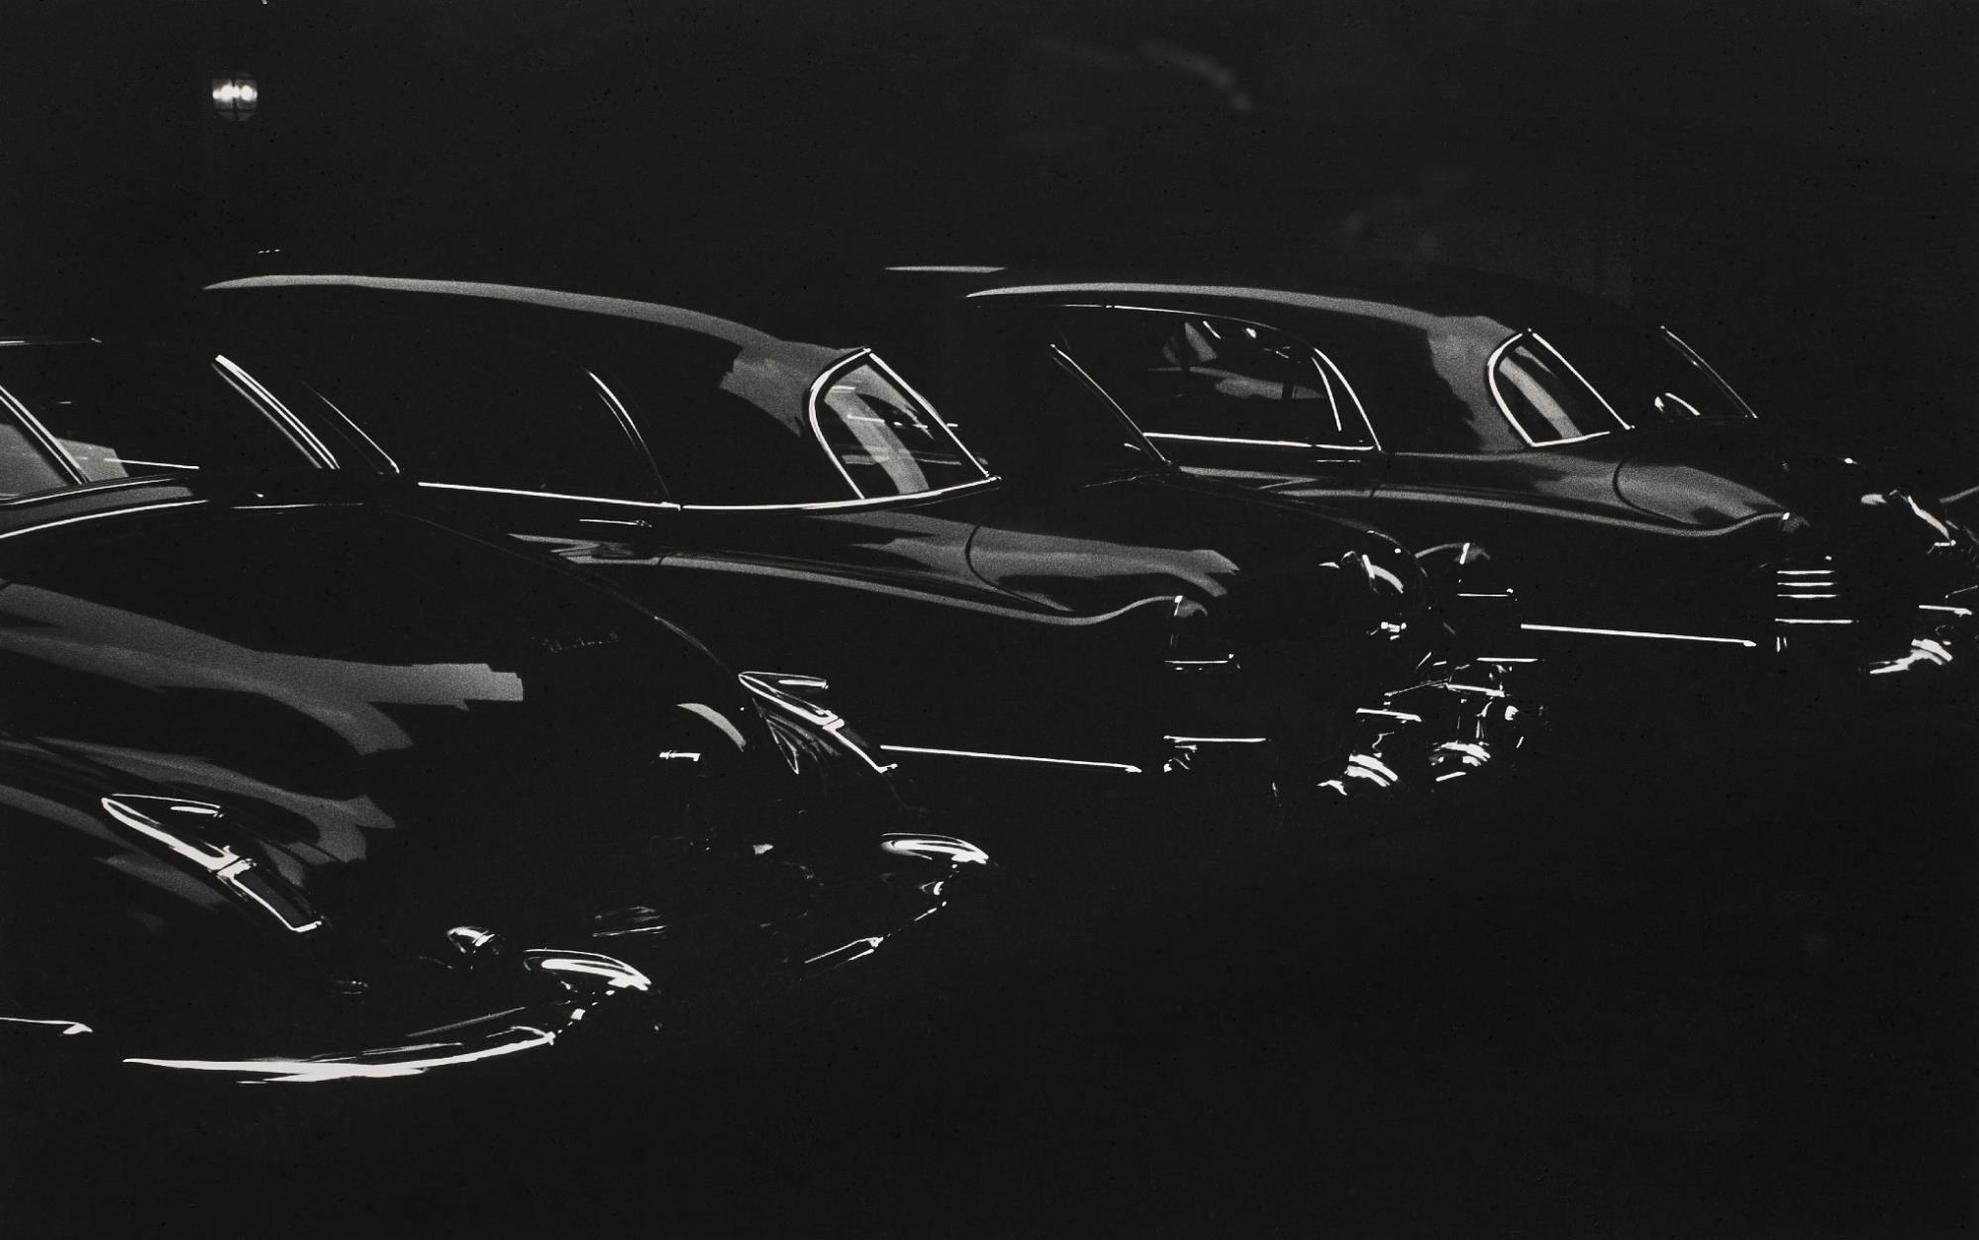 Louis Faurer-Park Ave. Garage At Hotel Marguery, New York City-1950